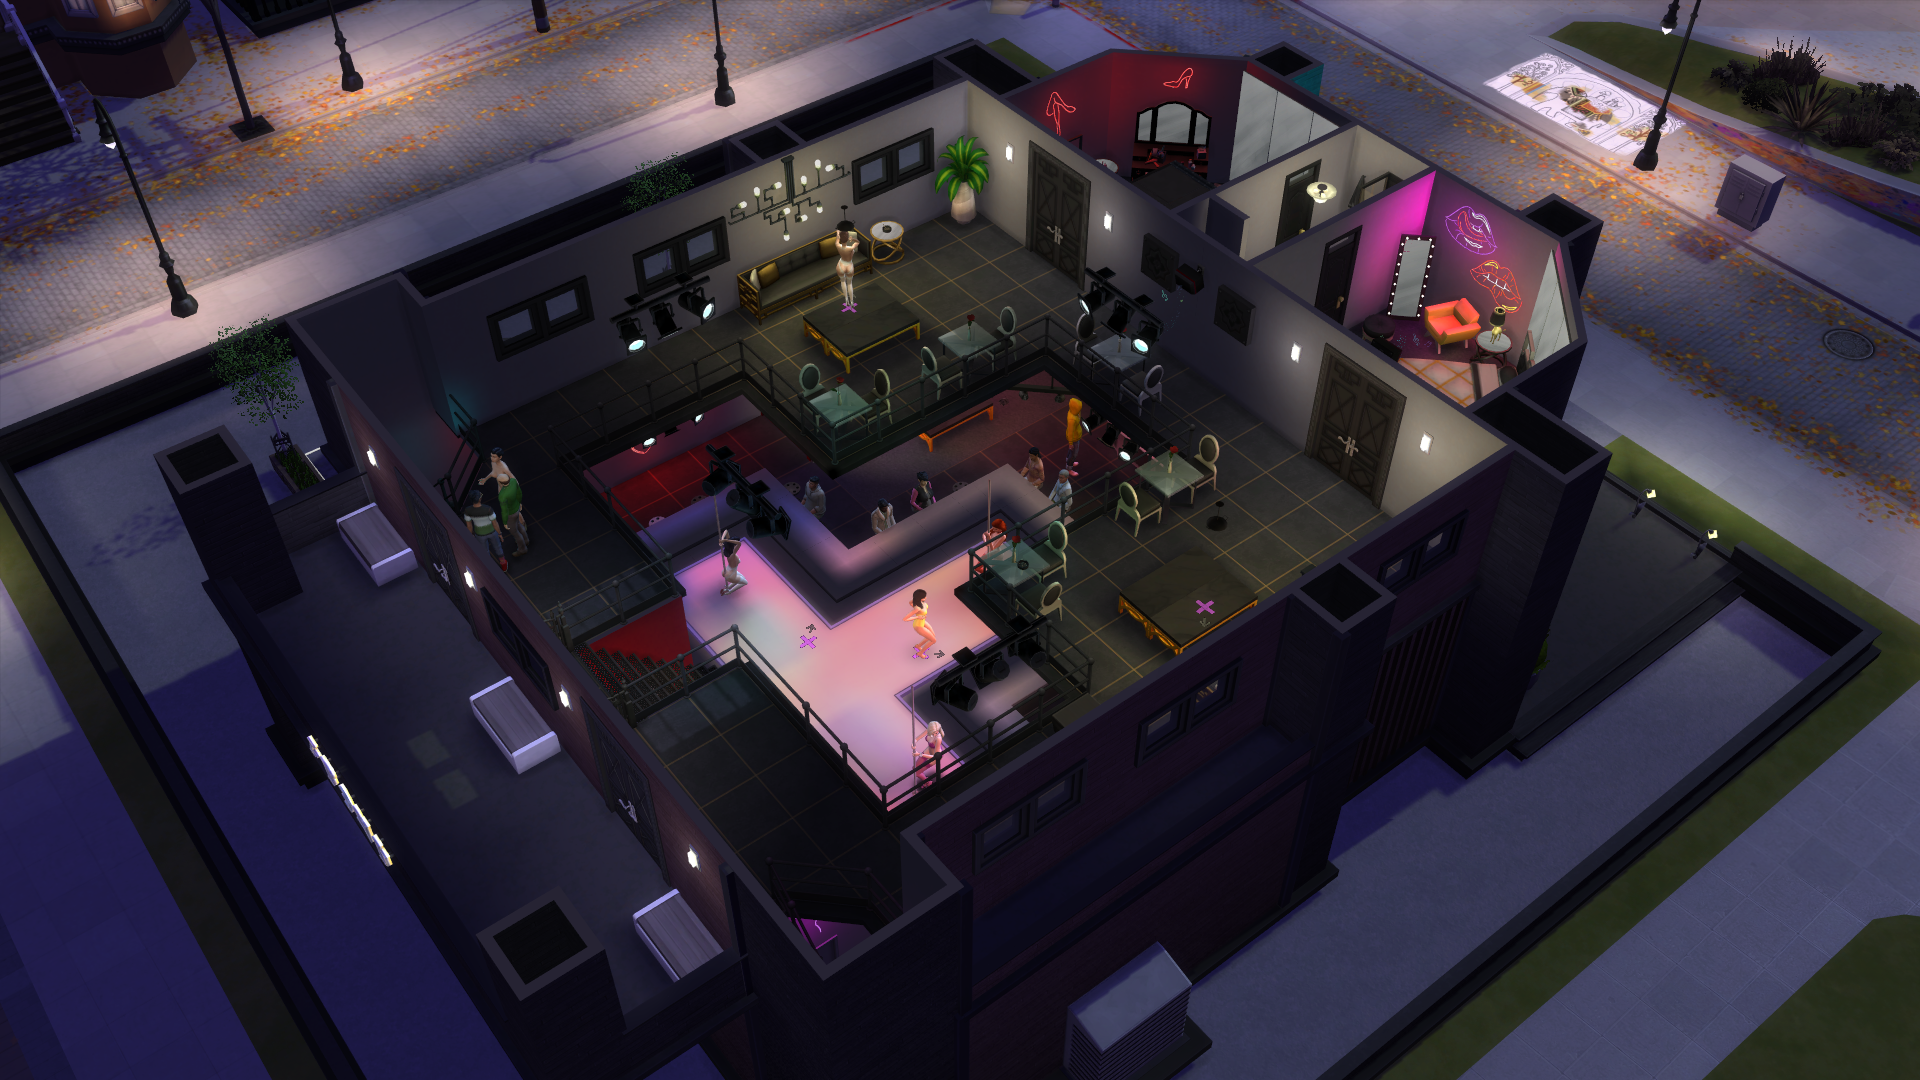 The sims 4 strip club lot second floor